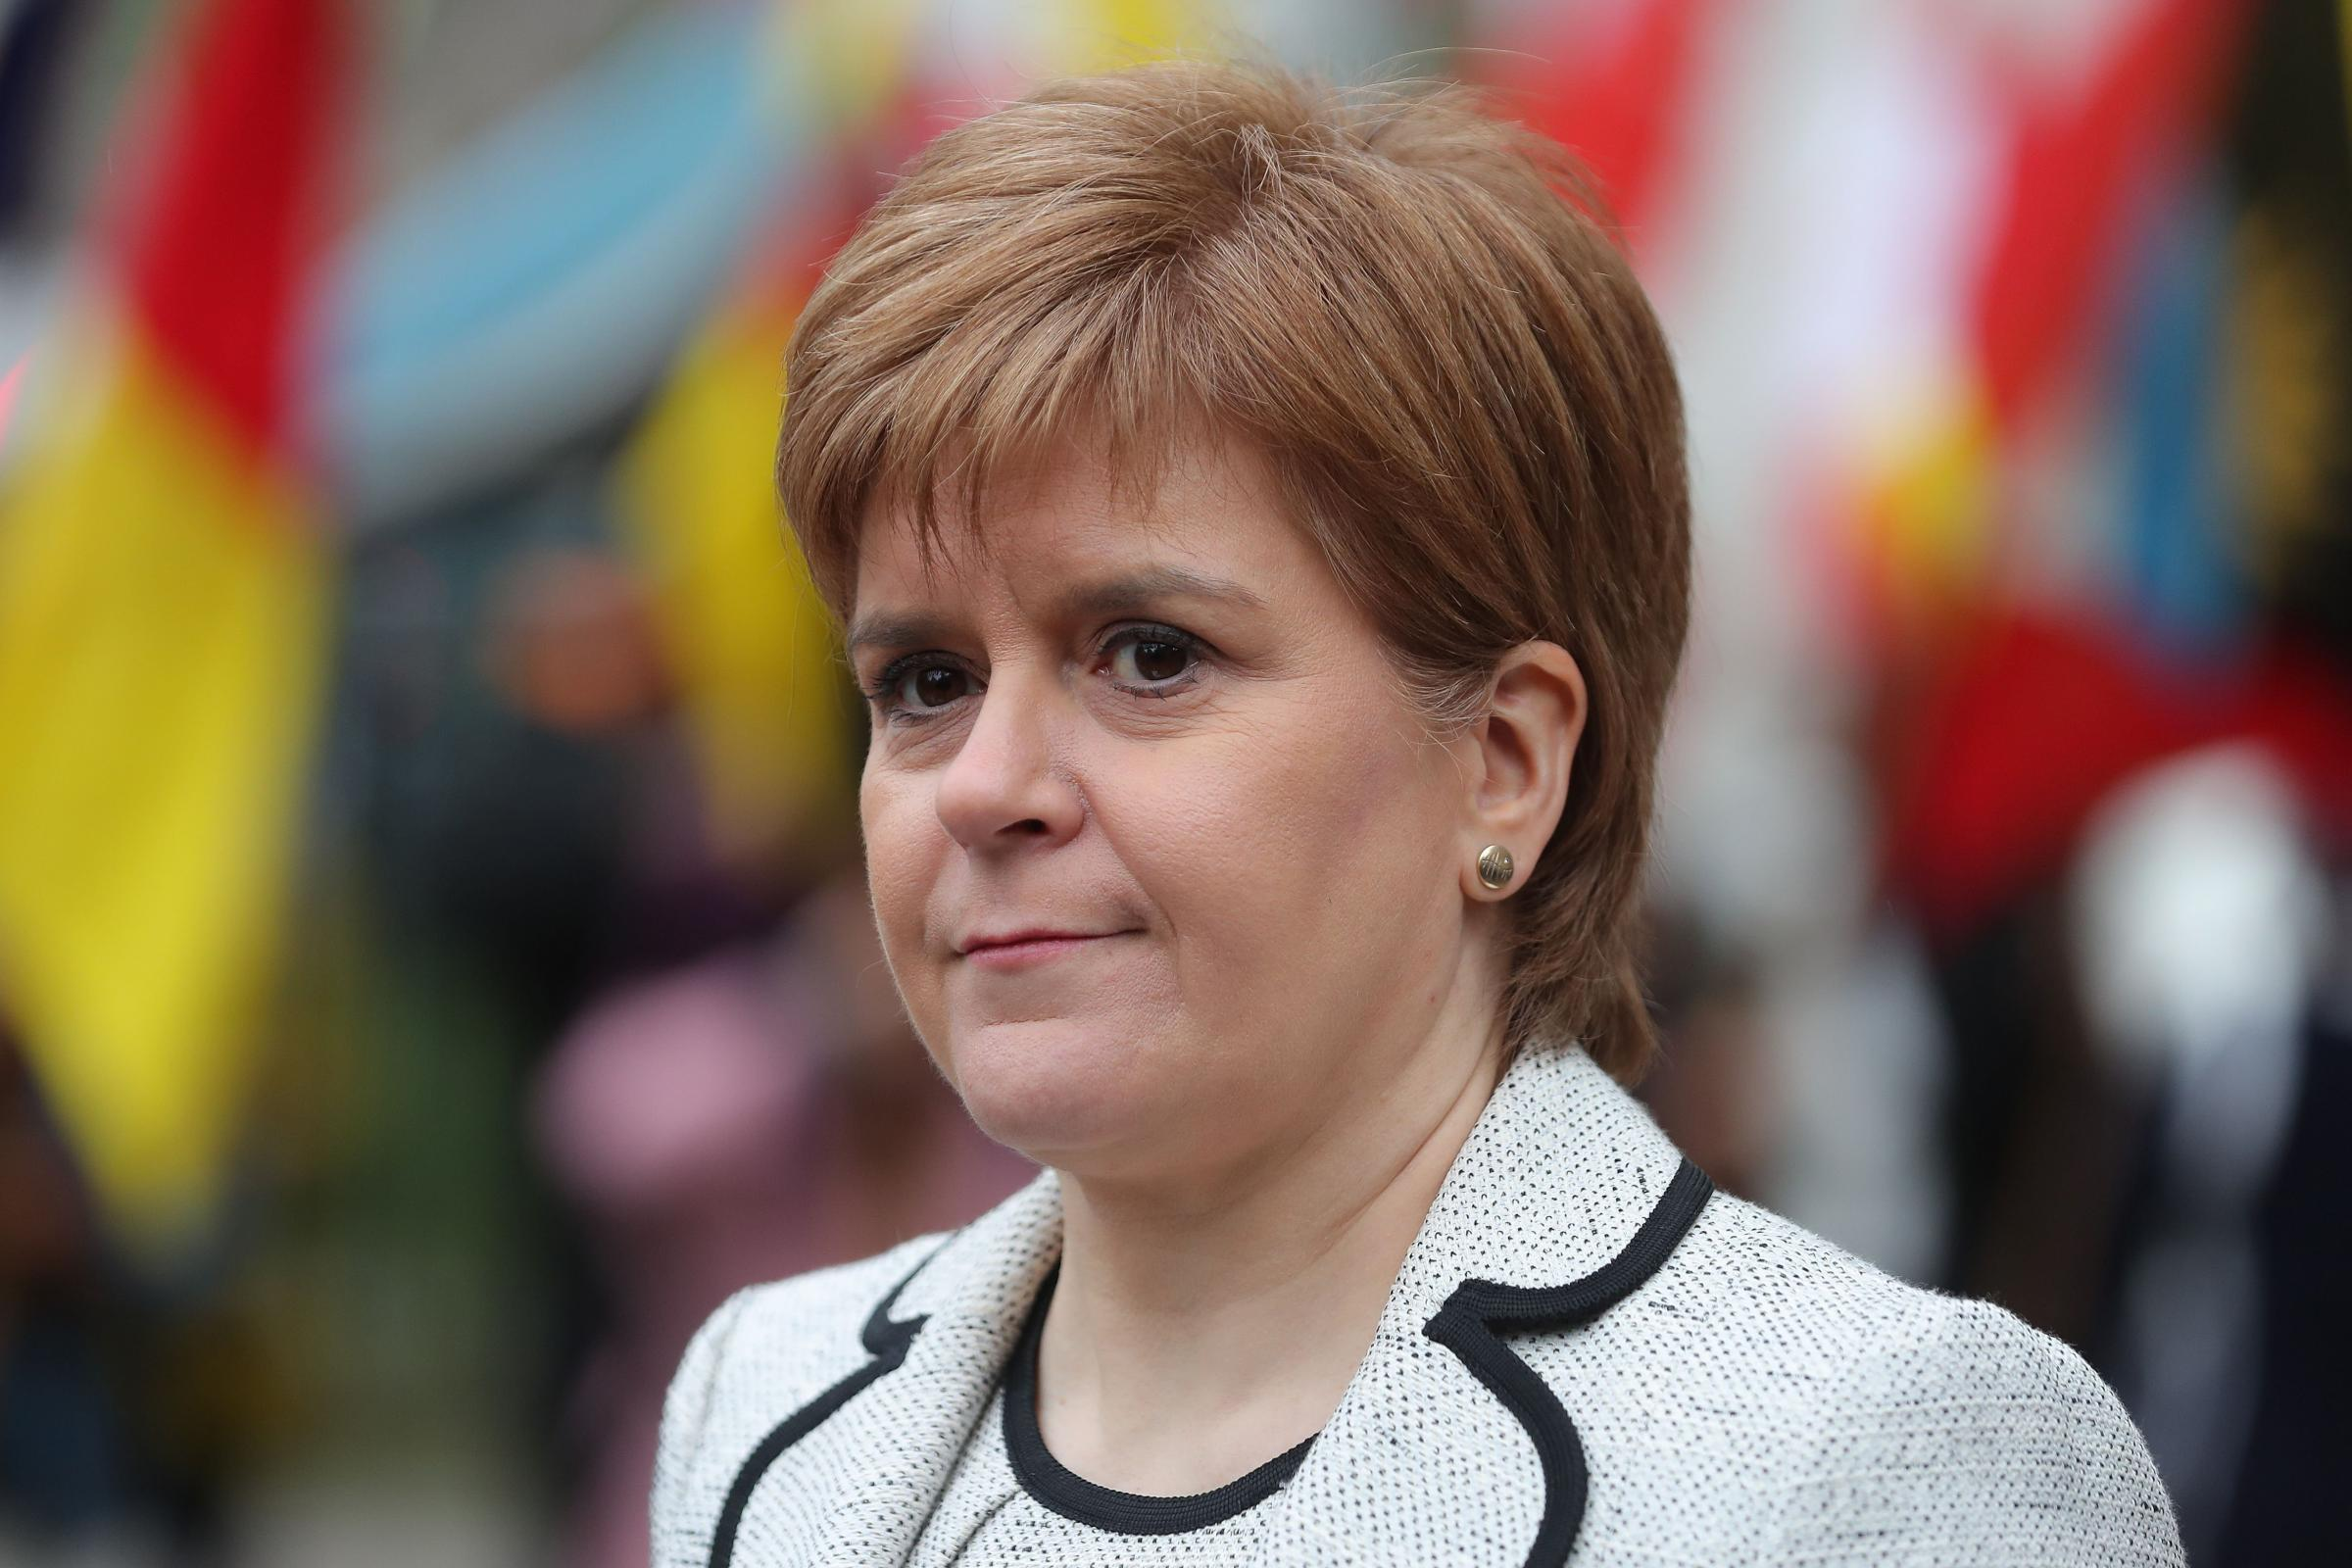 Nicola Sturgeon may not run for a seat in the UK Parliament ... but she was more popular than Michael Gove